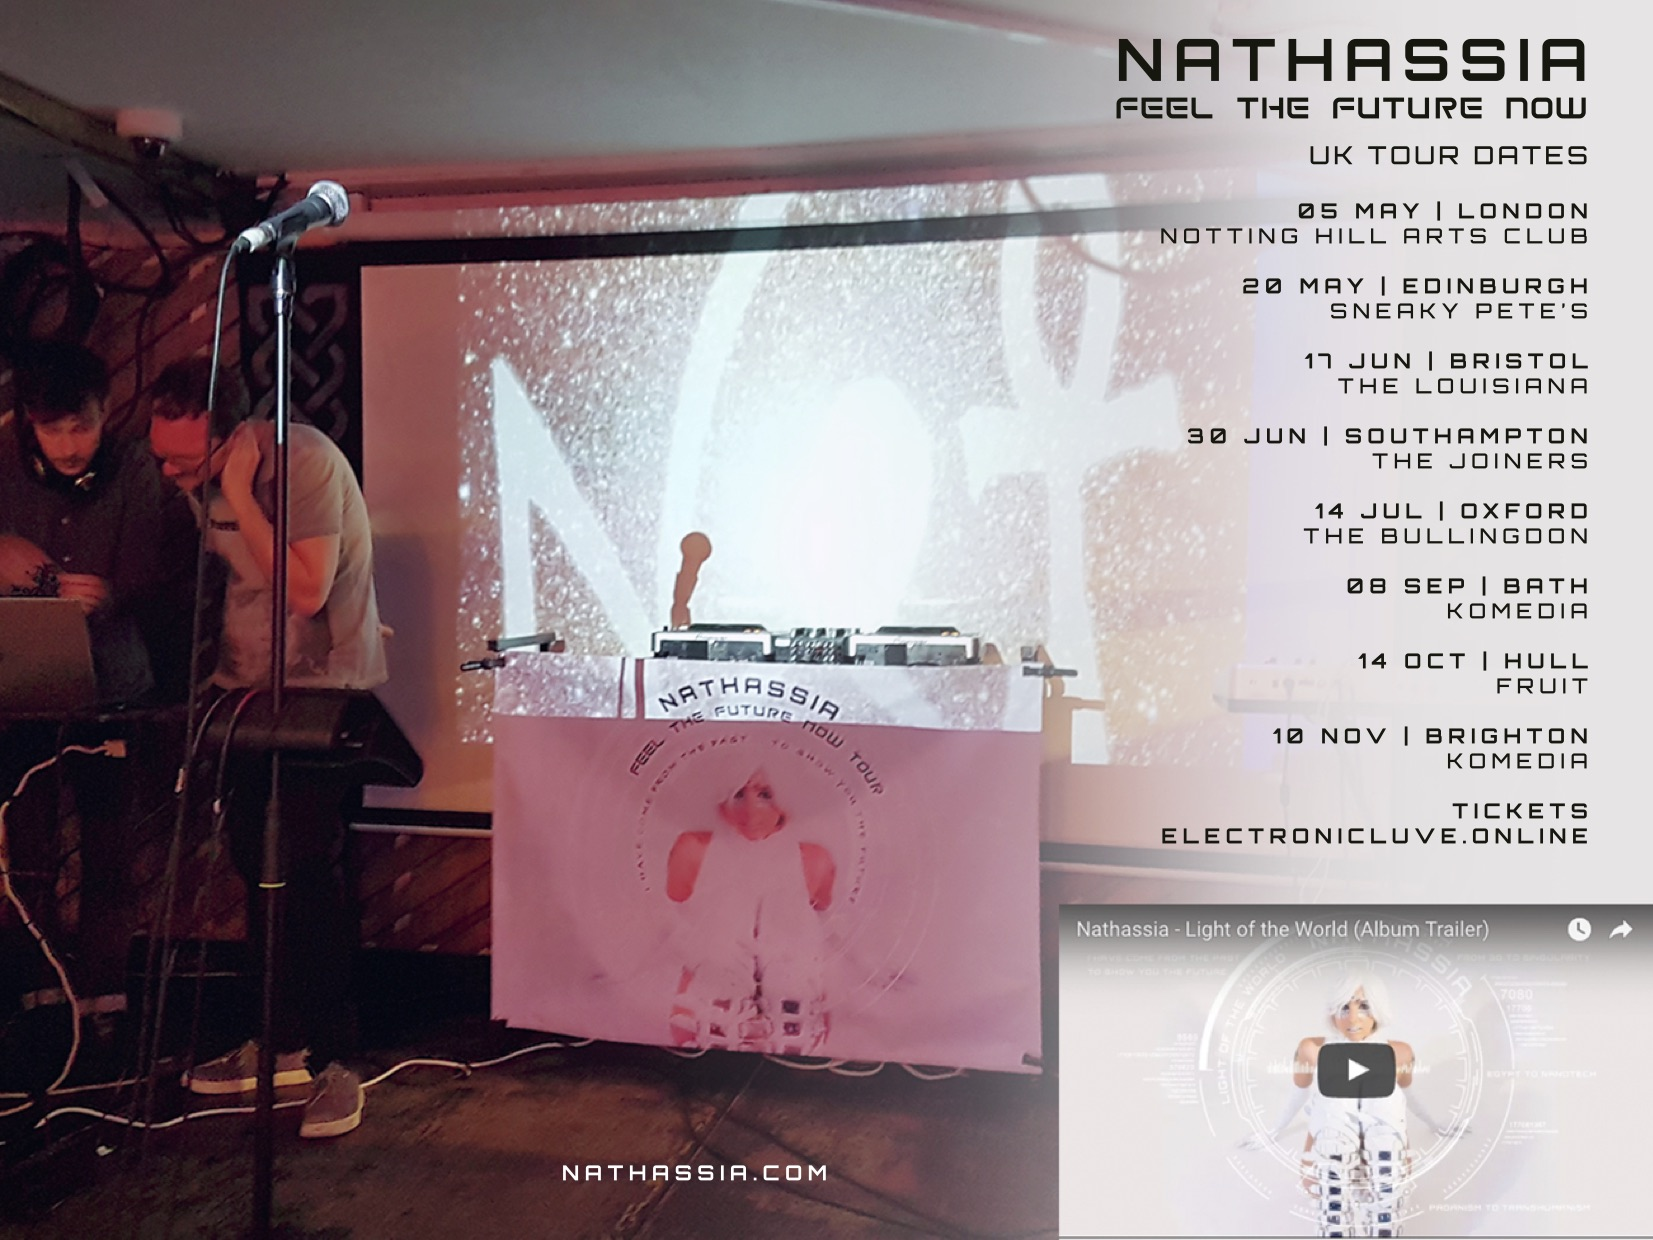 Tourbooklet page 5